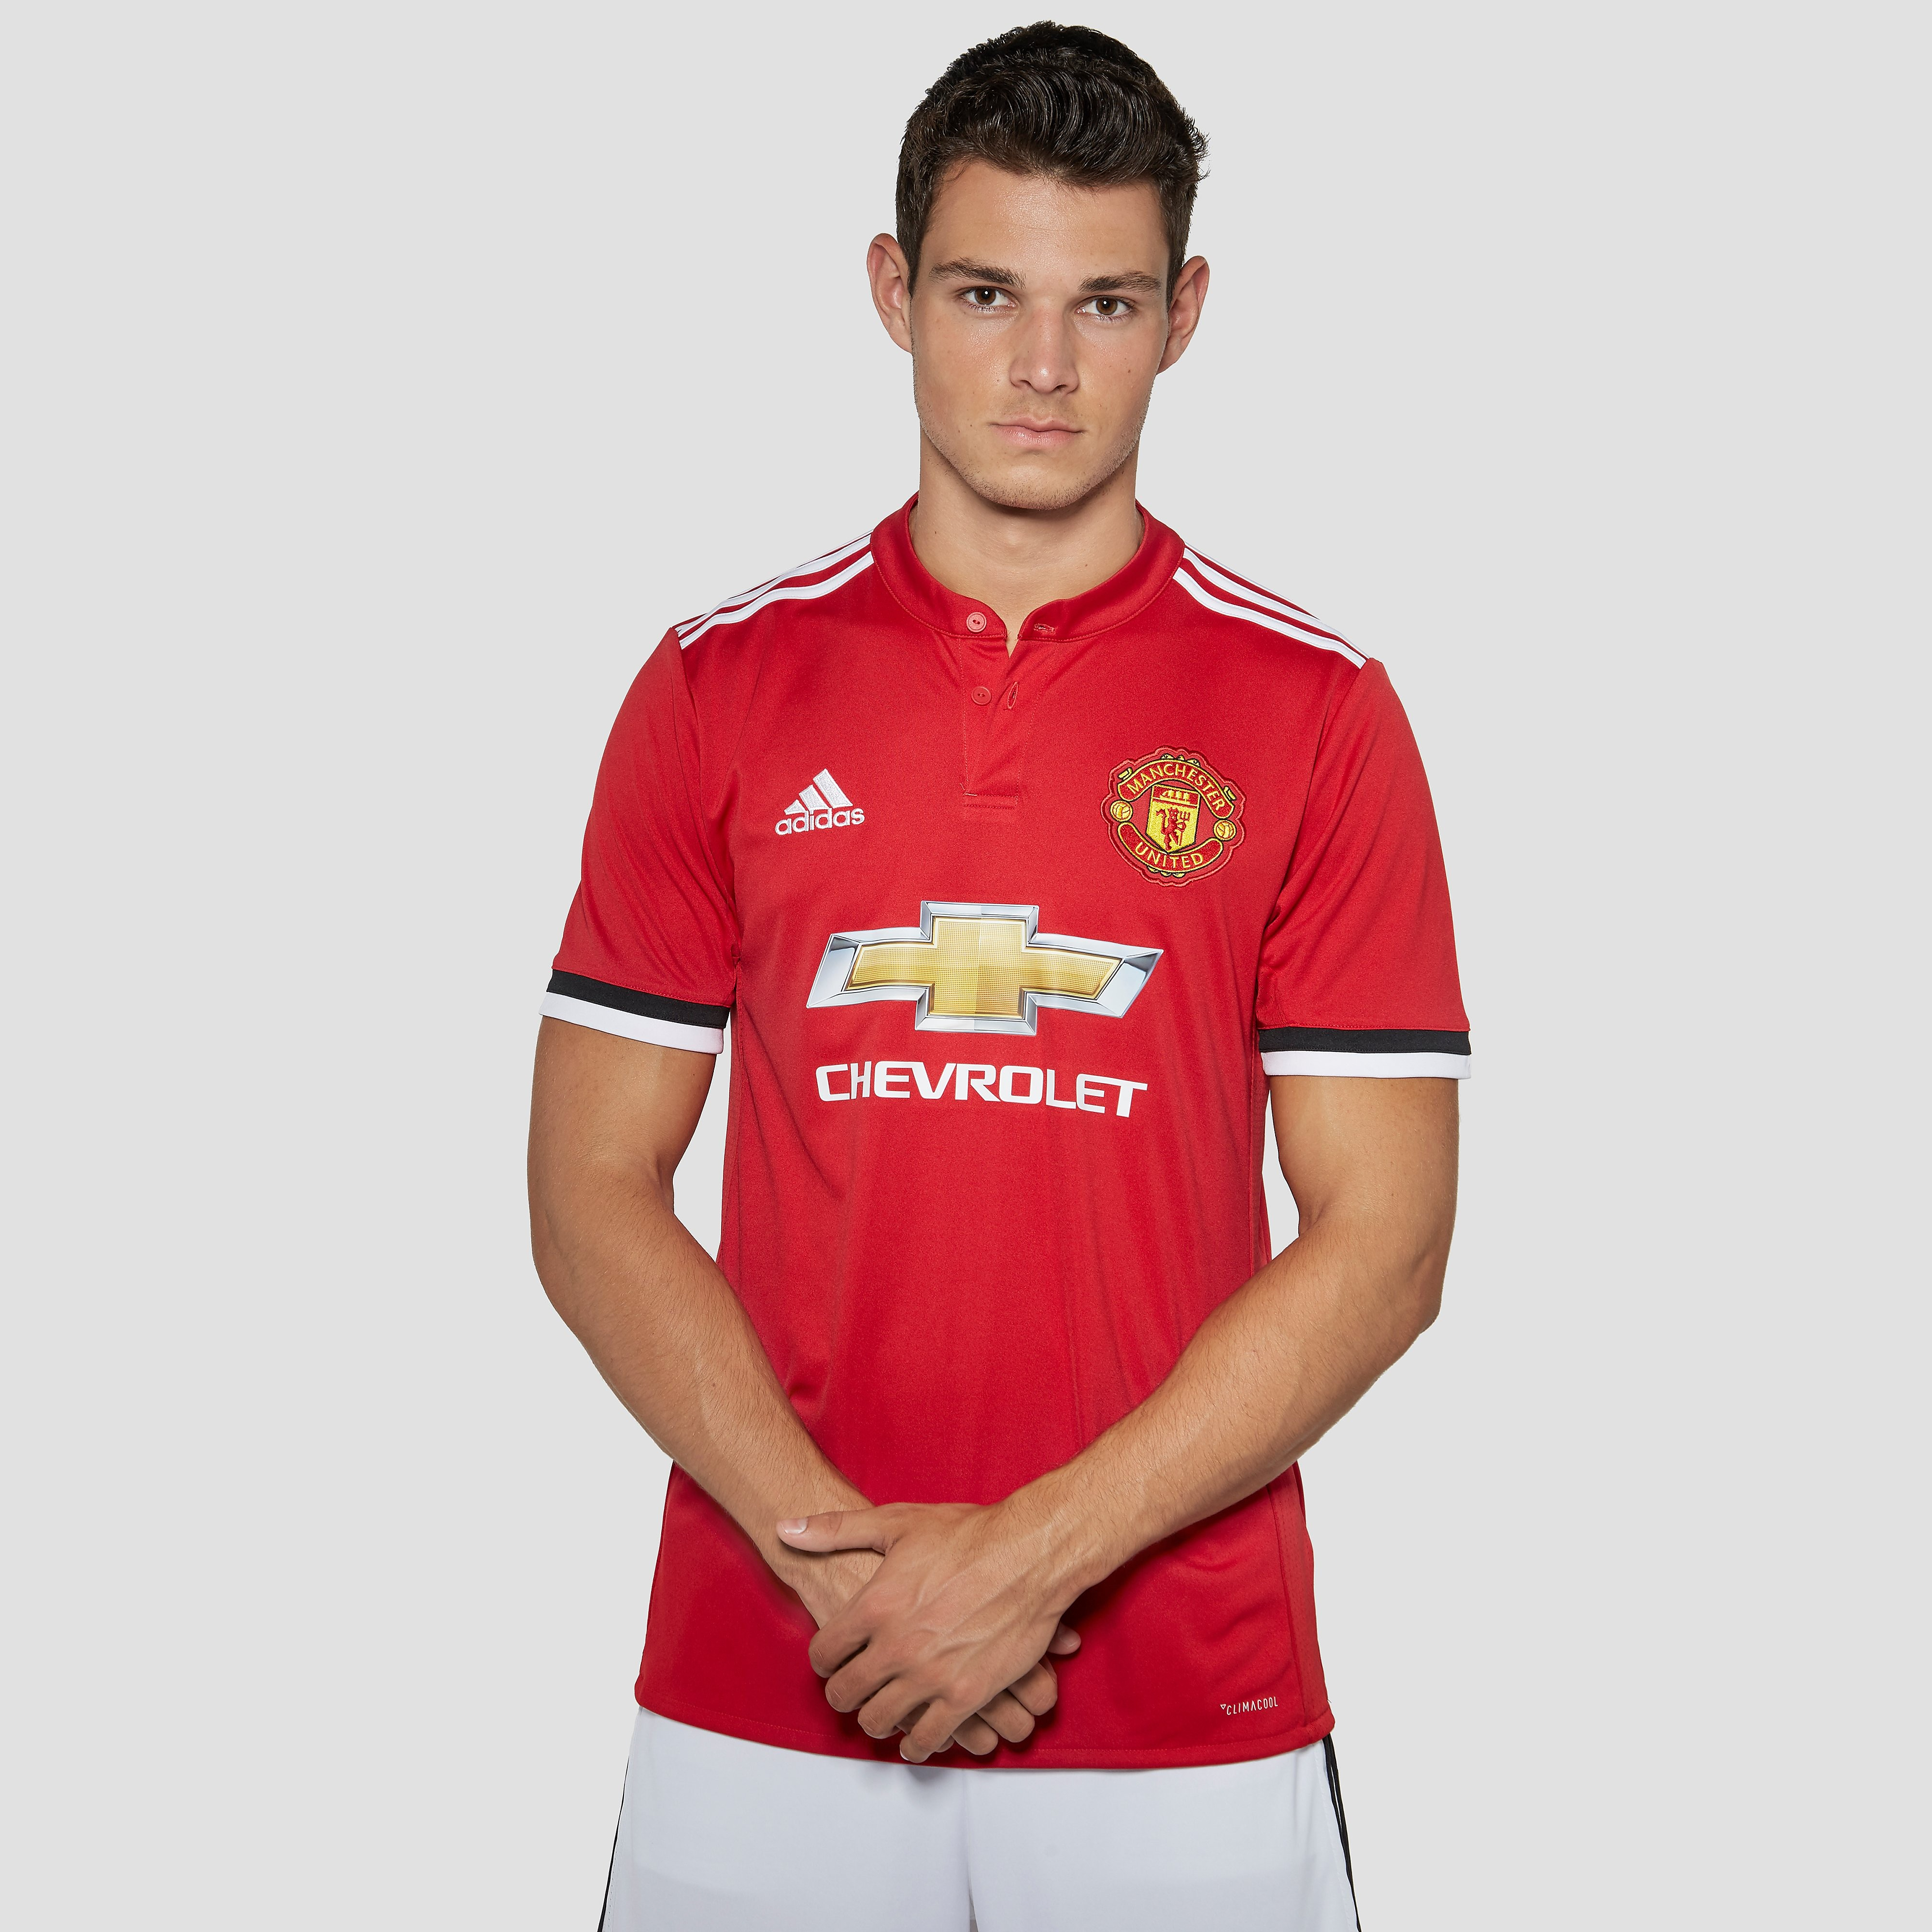 ADIDAS MANCHESTER UNITED FC THUISSHIRT ROOD/WIT HEREN